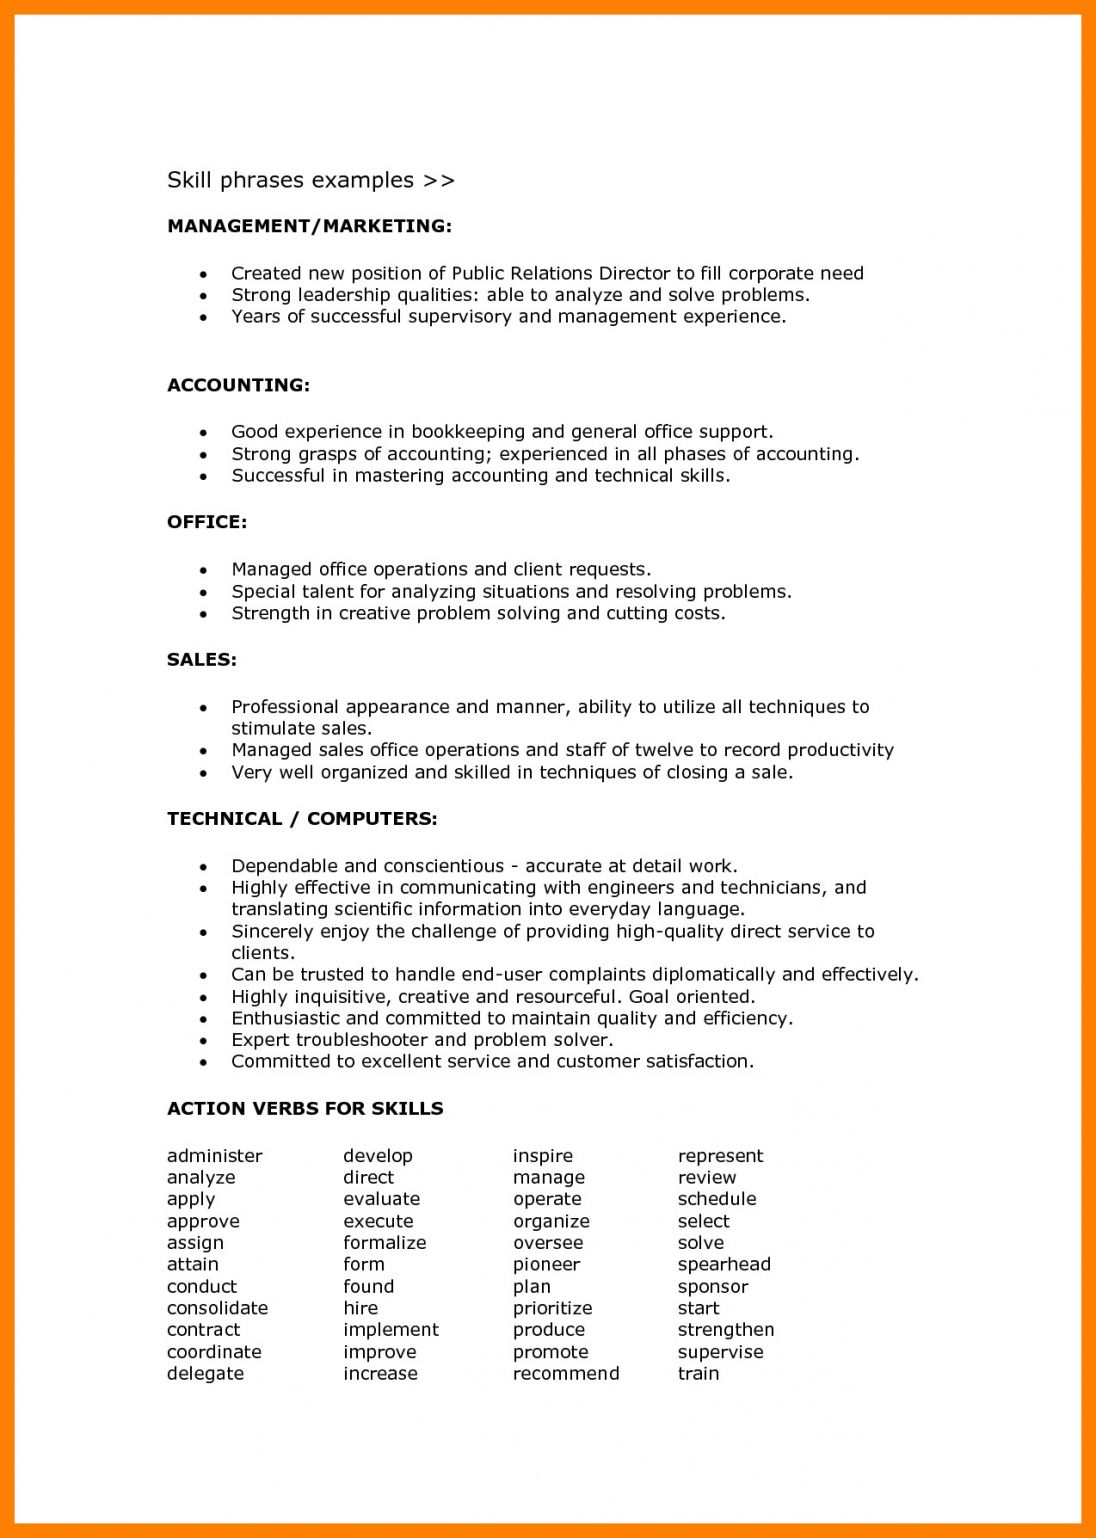 resume format language skills examples objective skill set acting free up adobe indesign Resume Skill Set Resume Format